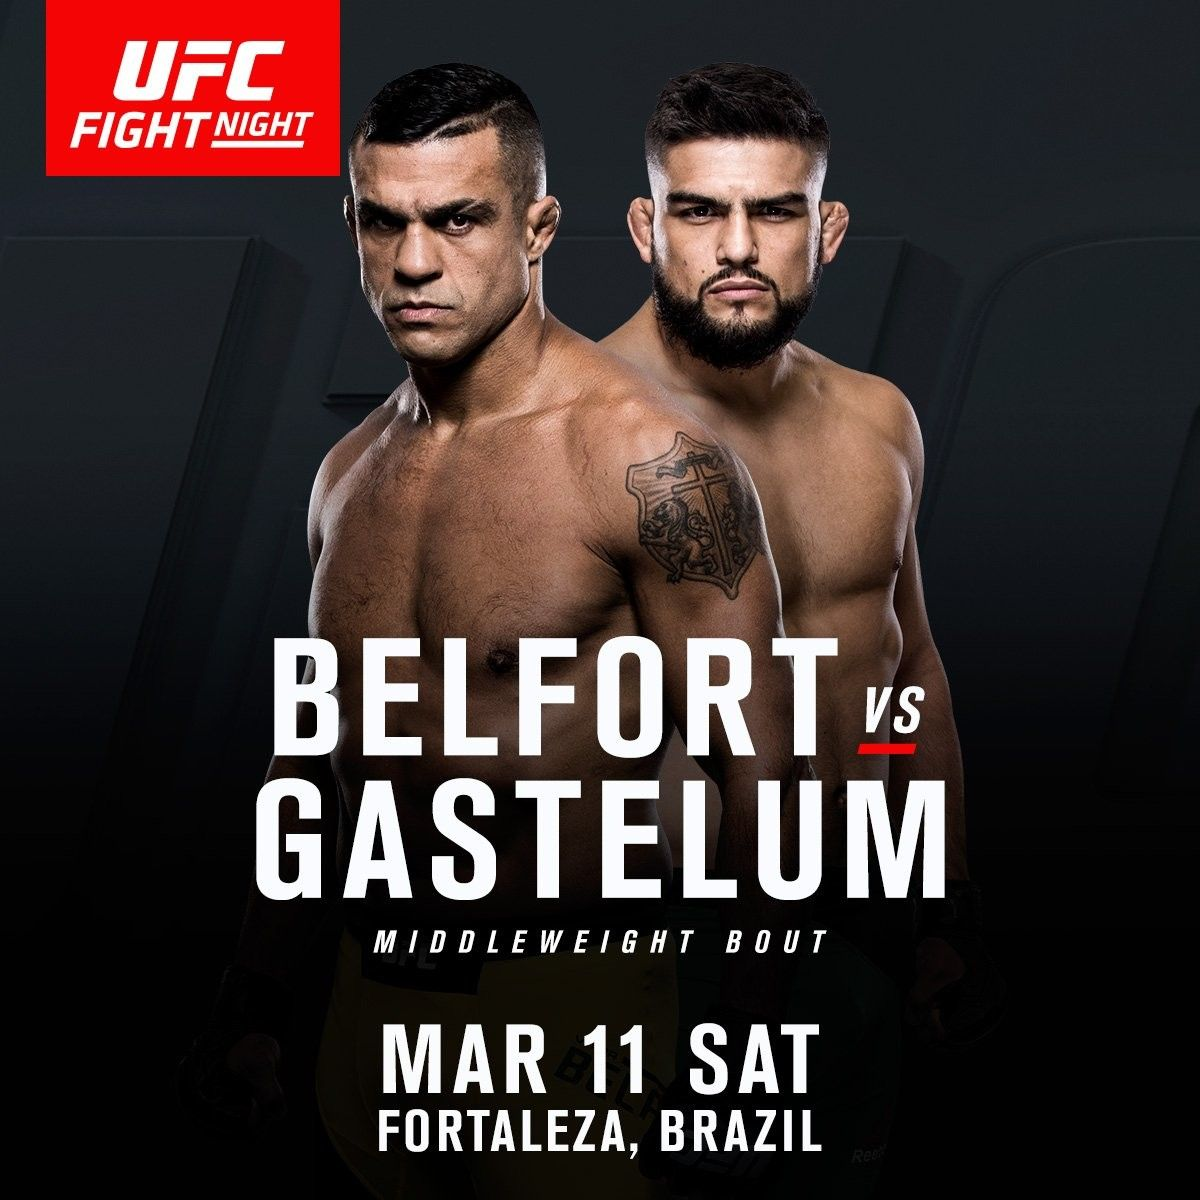 Ufc Fight Night Brazil Vitor Belfort Vs Kevin Gastelum Weigh In Video Video Preview Real Combat Media Ufc Fight Night Ufc Fight Night